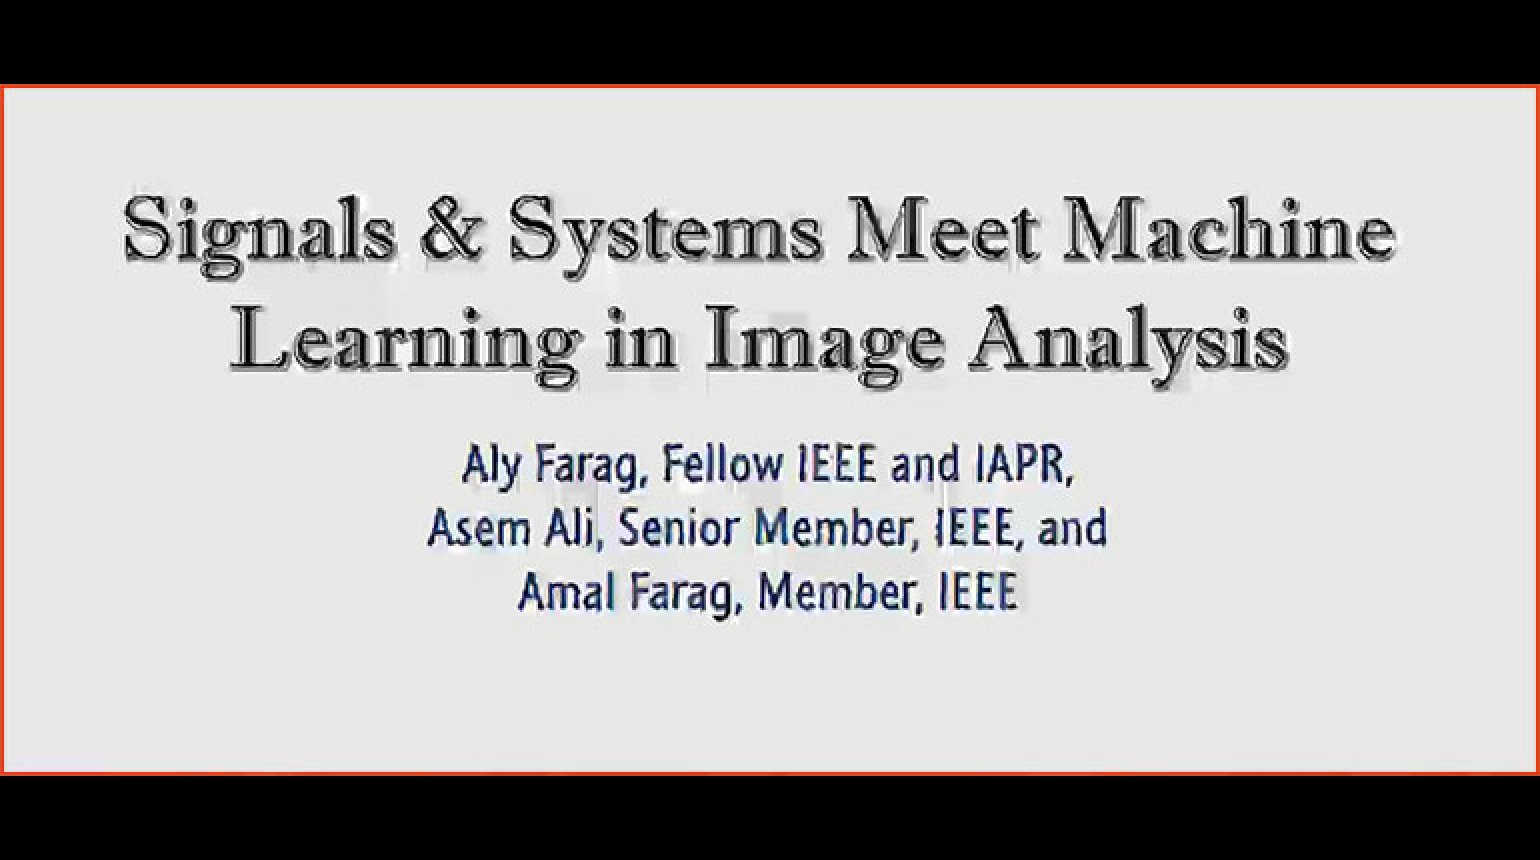 Tutorial 12 - Signals and Systems Meets Machine Learning Biomedical Image Analysis